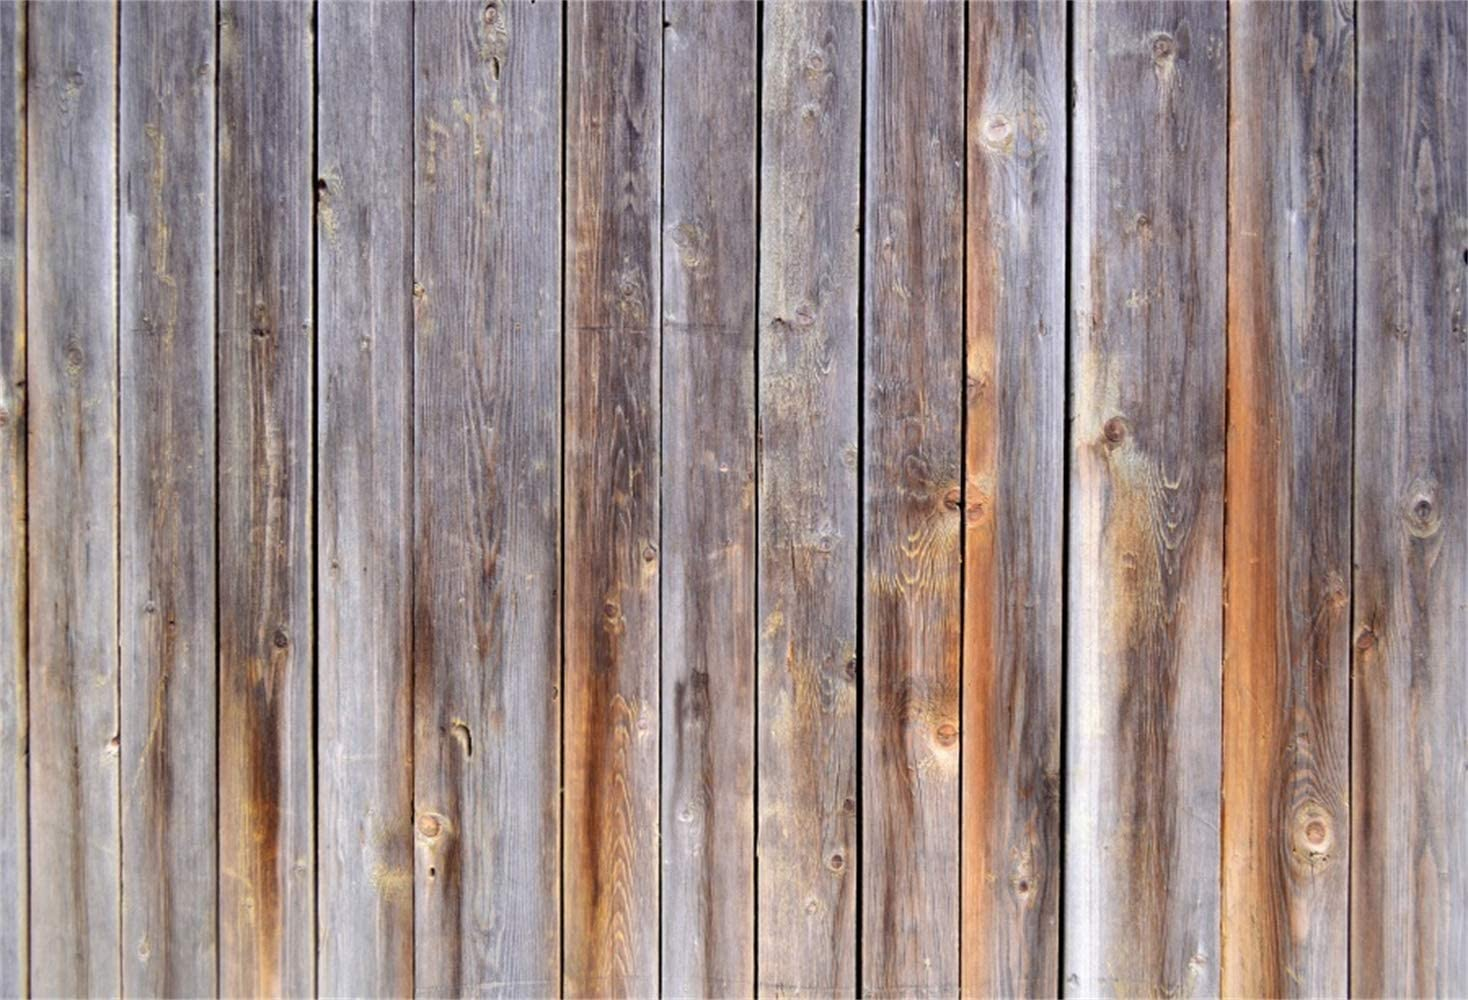 Vintage Rustic Wood Teture Wall Backdrops Countryside 10x7ft Vinyl Photography Backdrop Grunge Retro Vertical Striped Wood Plank Background Children Adult Rural Style Portrais Old Barn